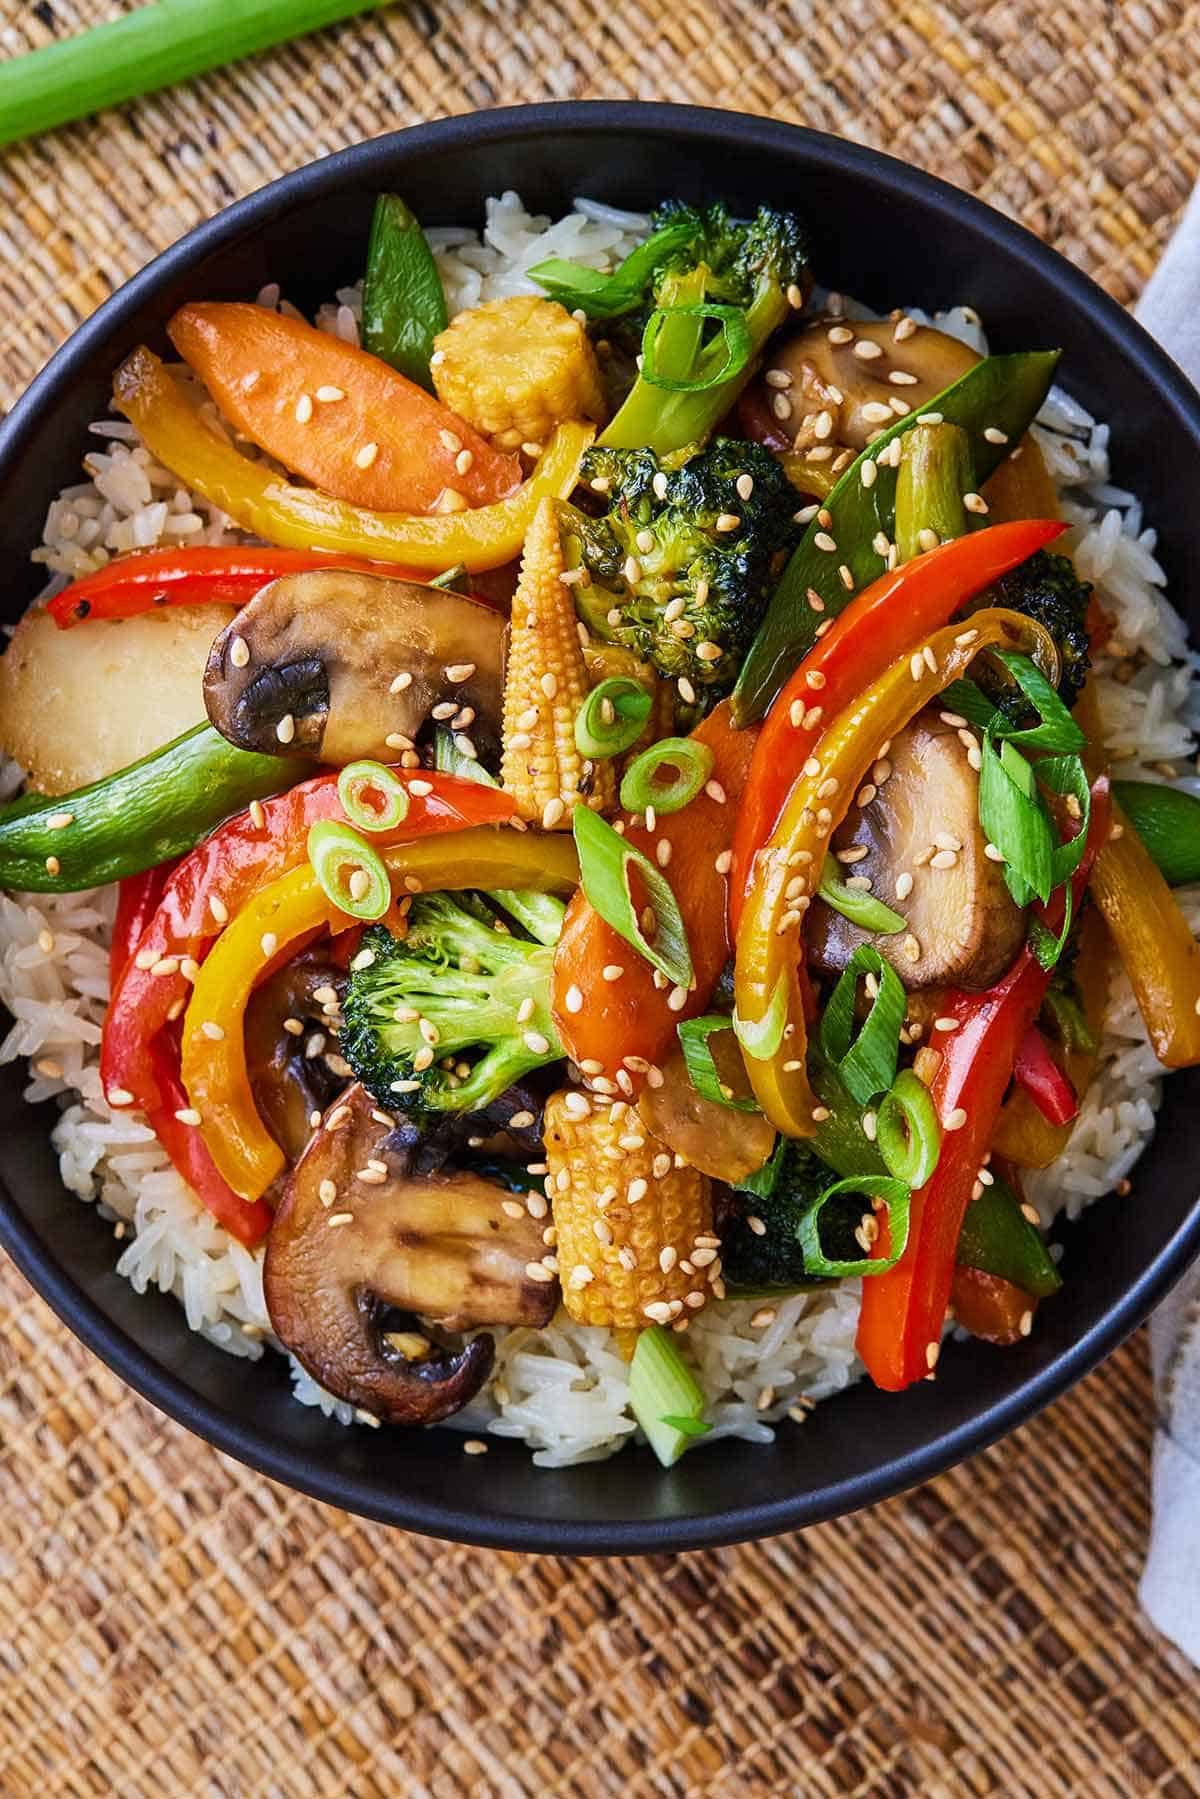 Overhead view of a bowl of stir fry with rice.